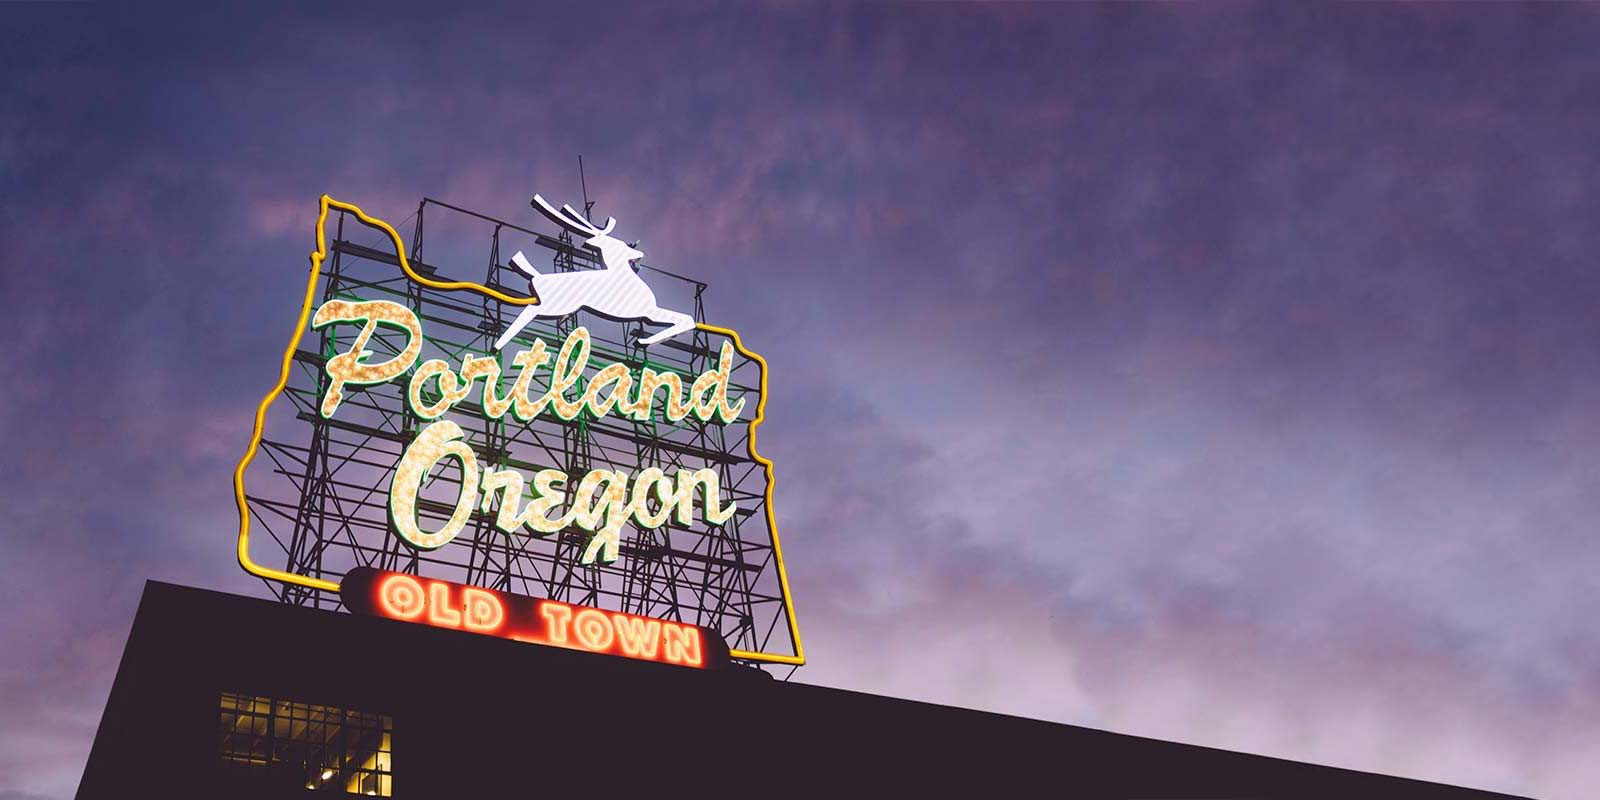 We call beautiful Portland, Oregon our home